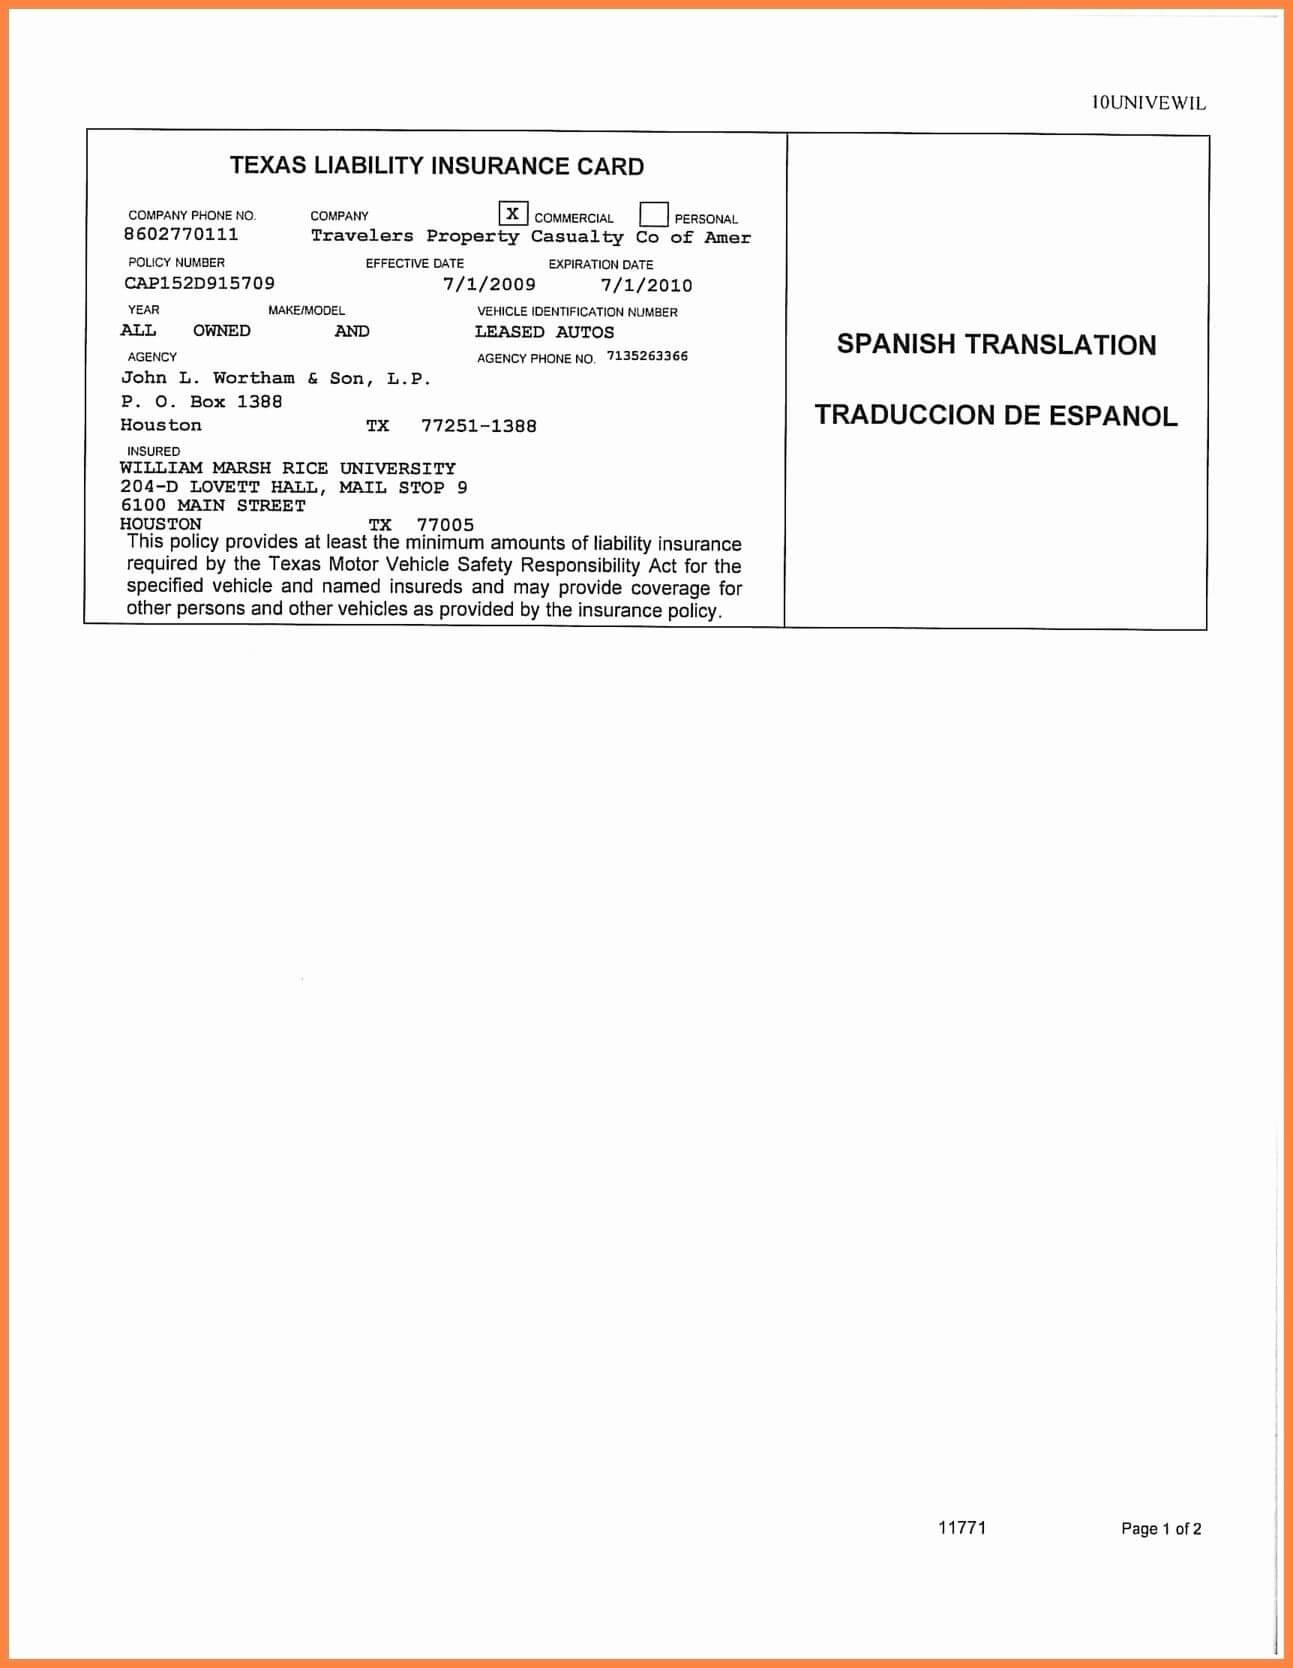 Auto Insurance Card Template Free Download #2 In 2019 | Id Inside Auto Insurance Card Template Free Download